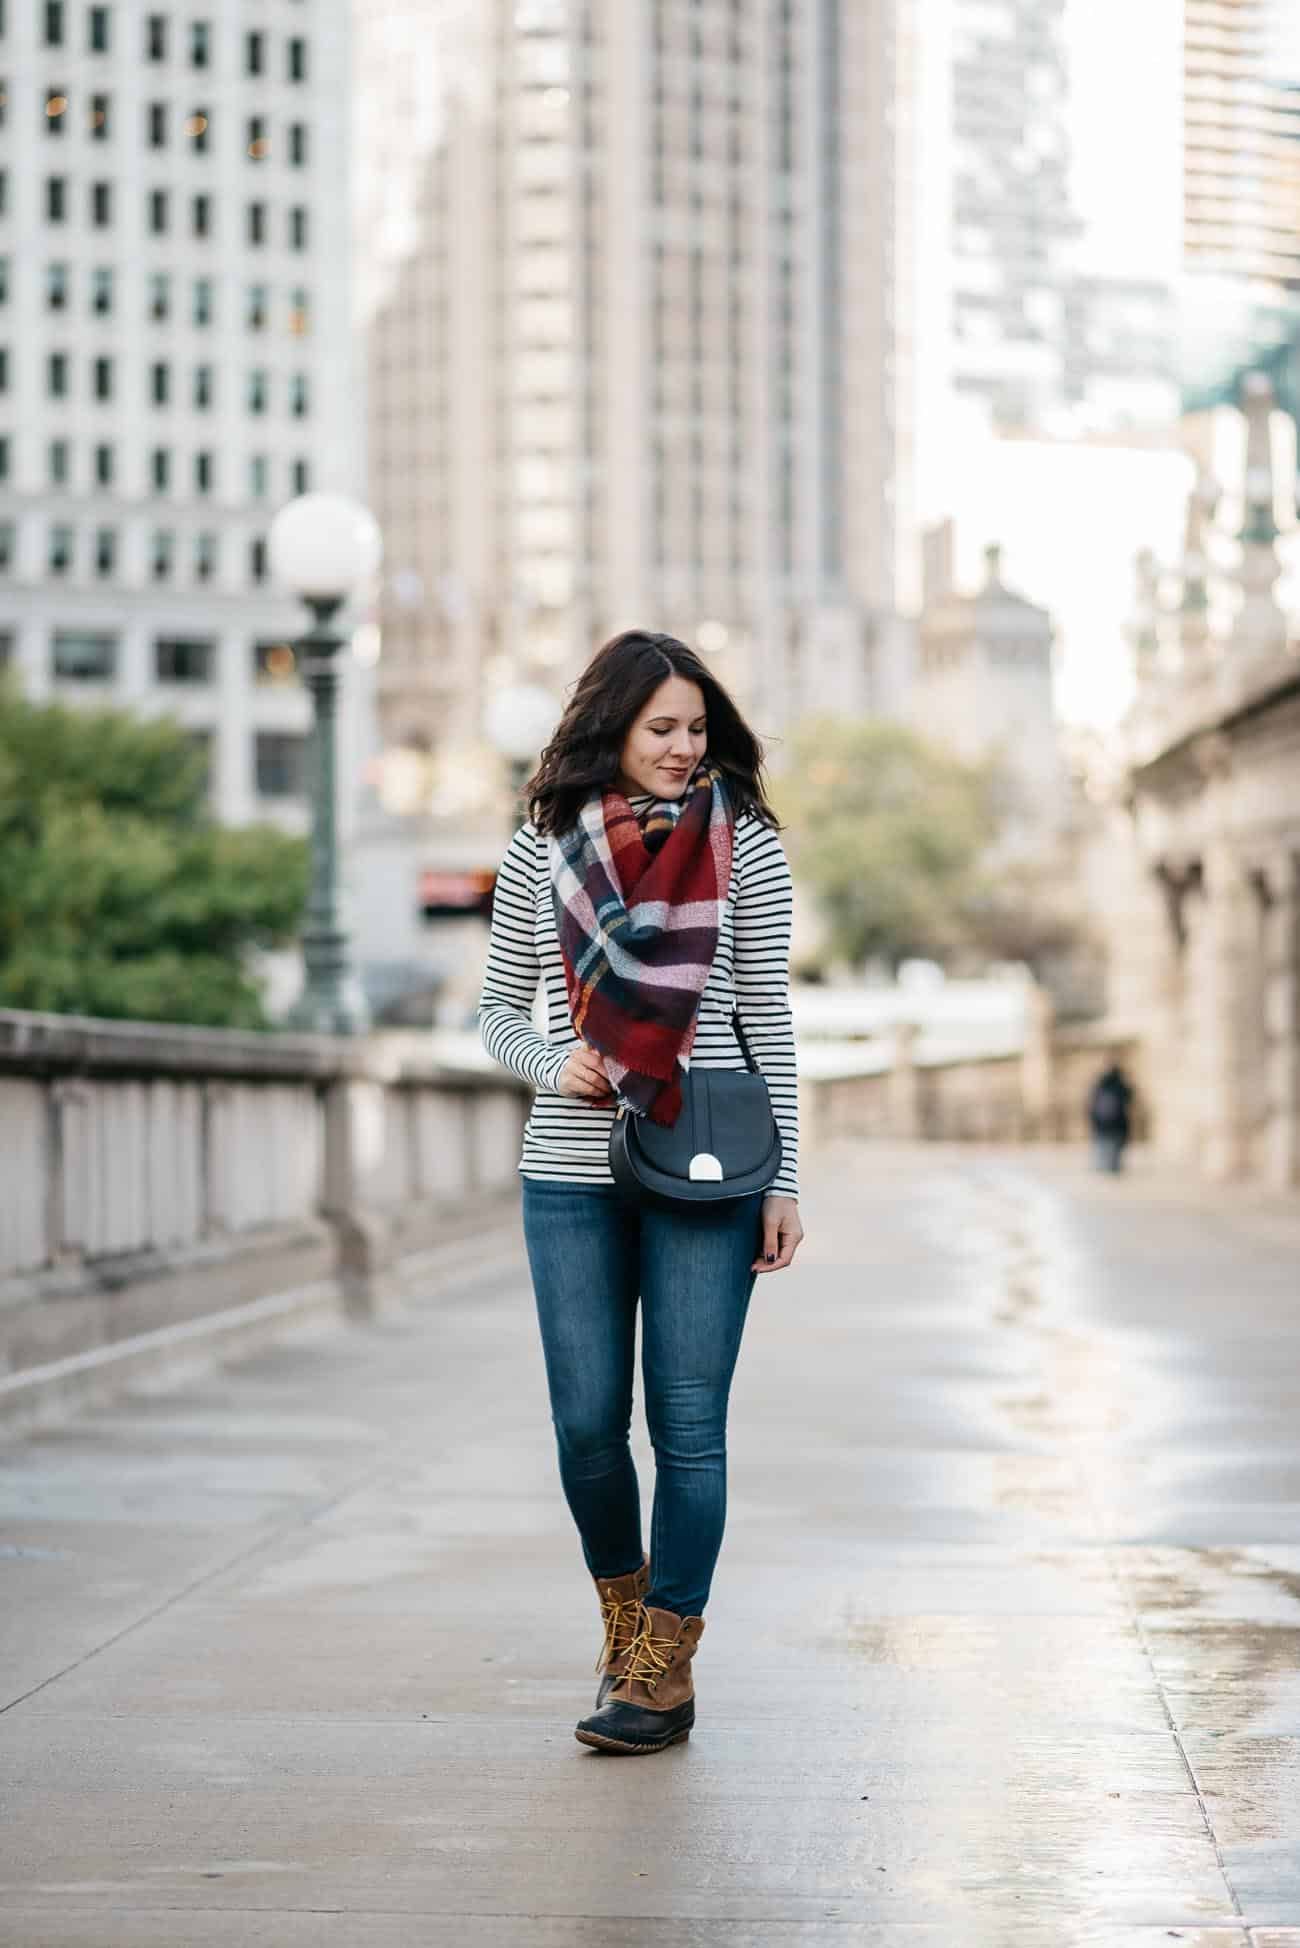 Styling Sorels - How To Style SOREL Boots